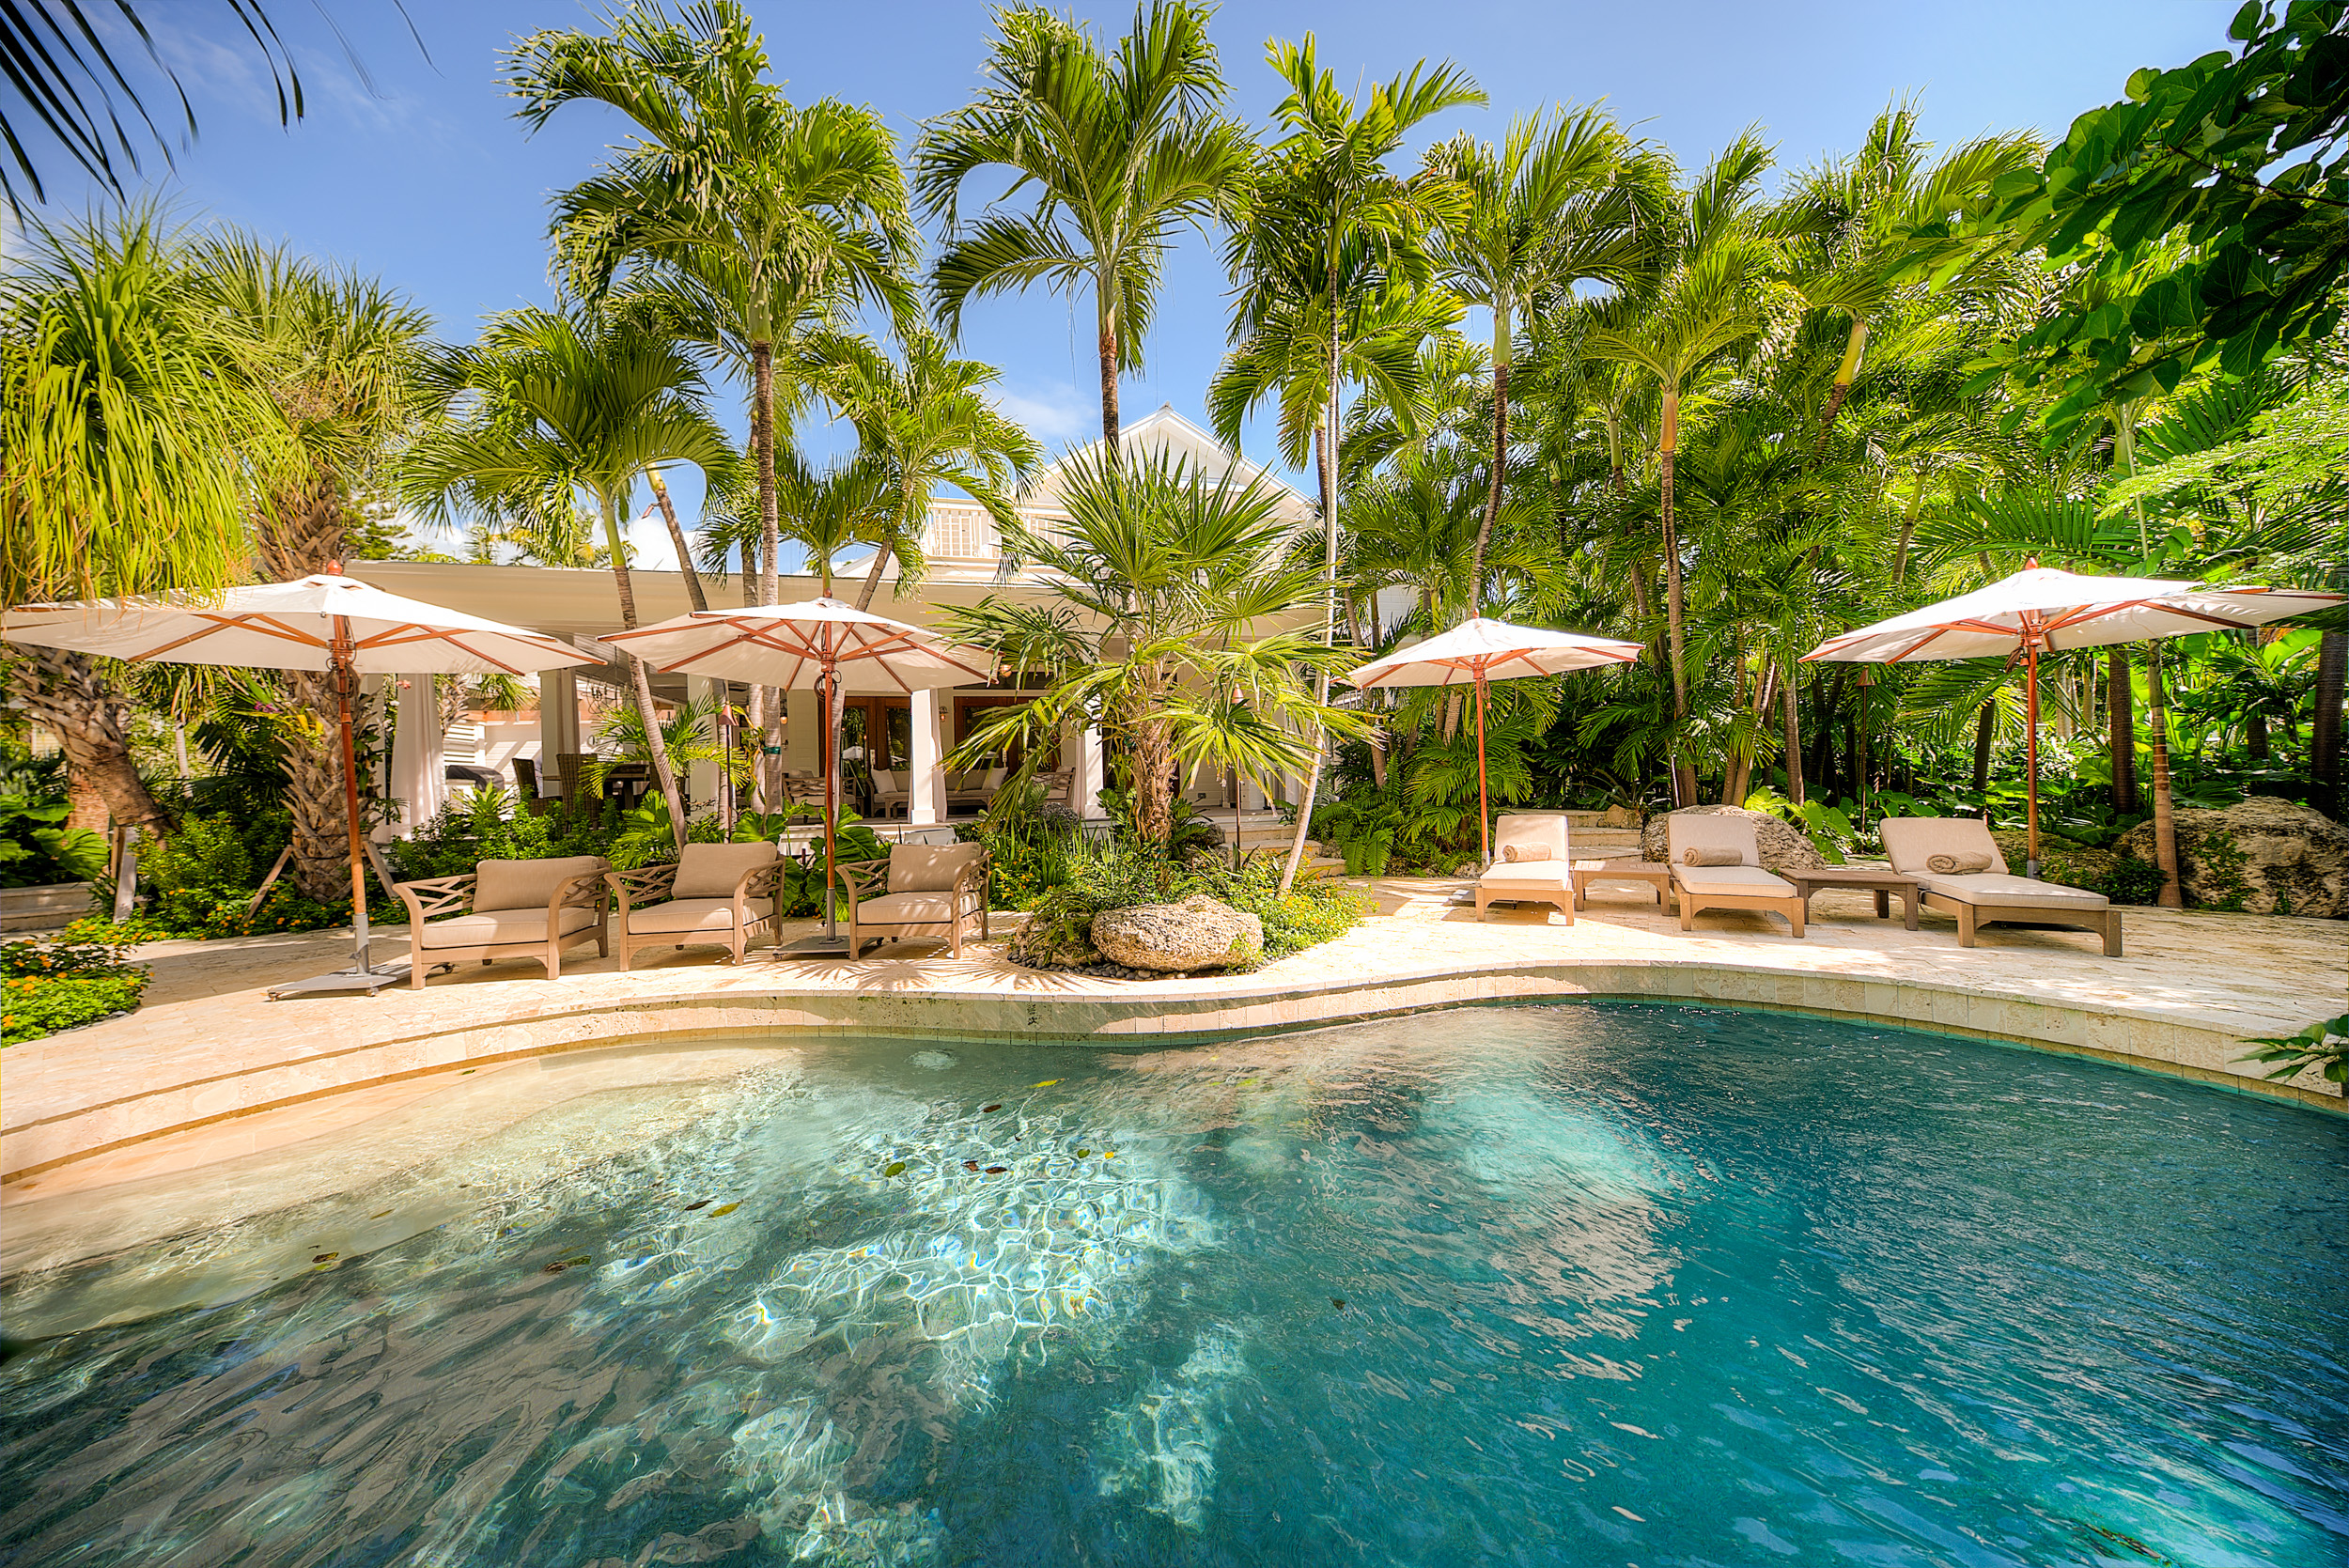 A lush backyard in key west with tropical gradens and a heated pool